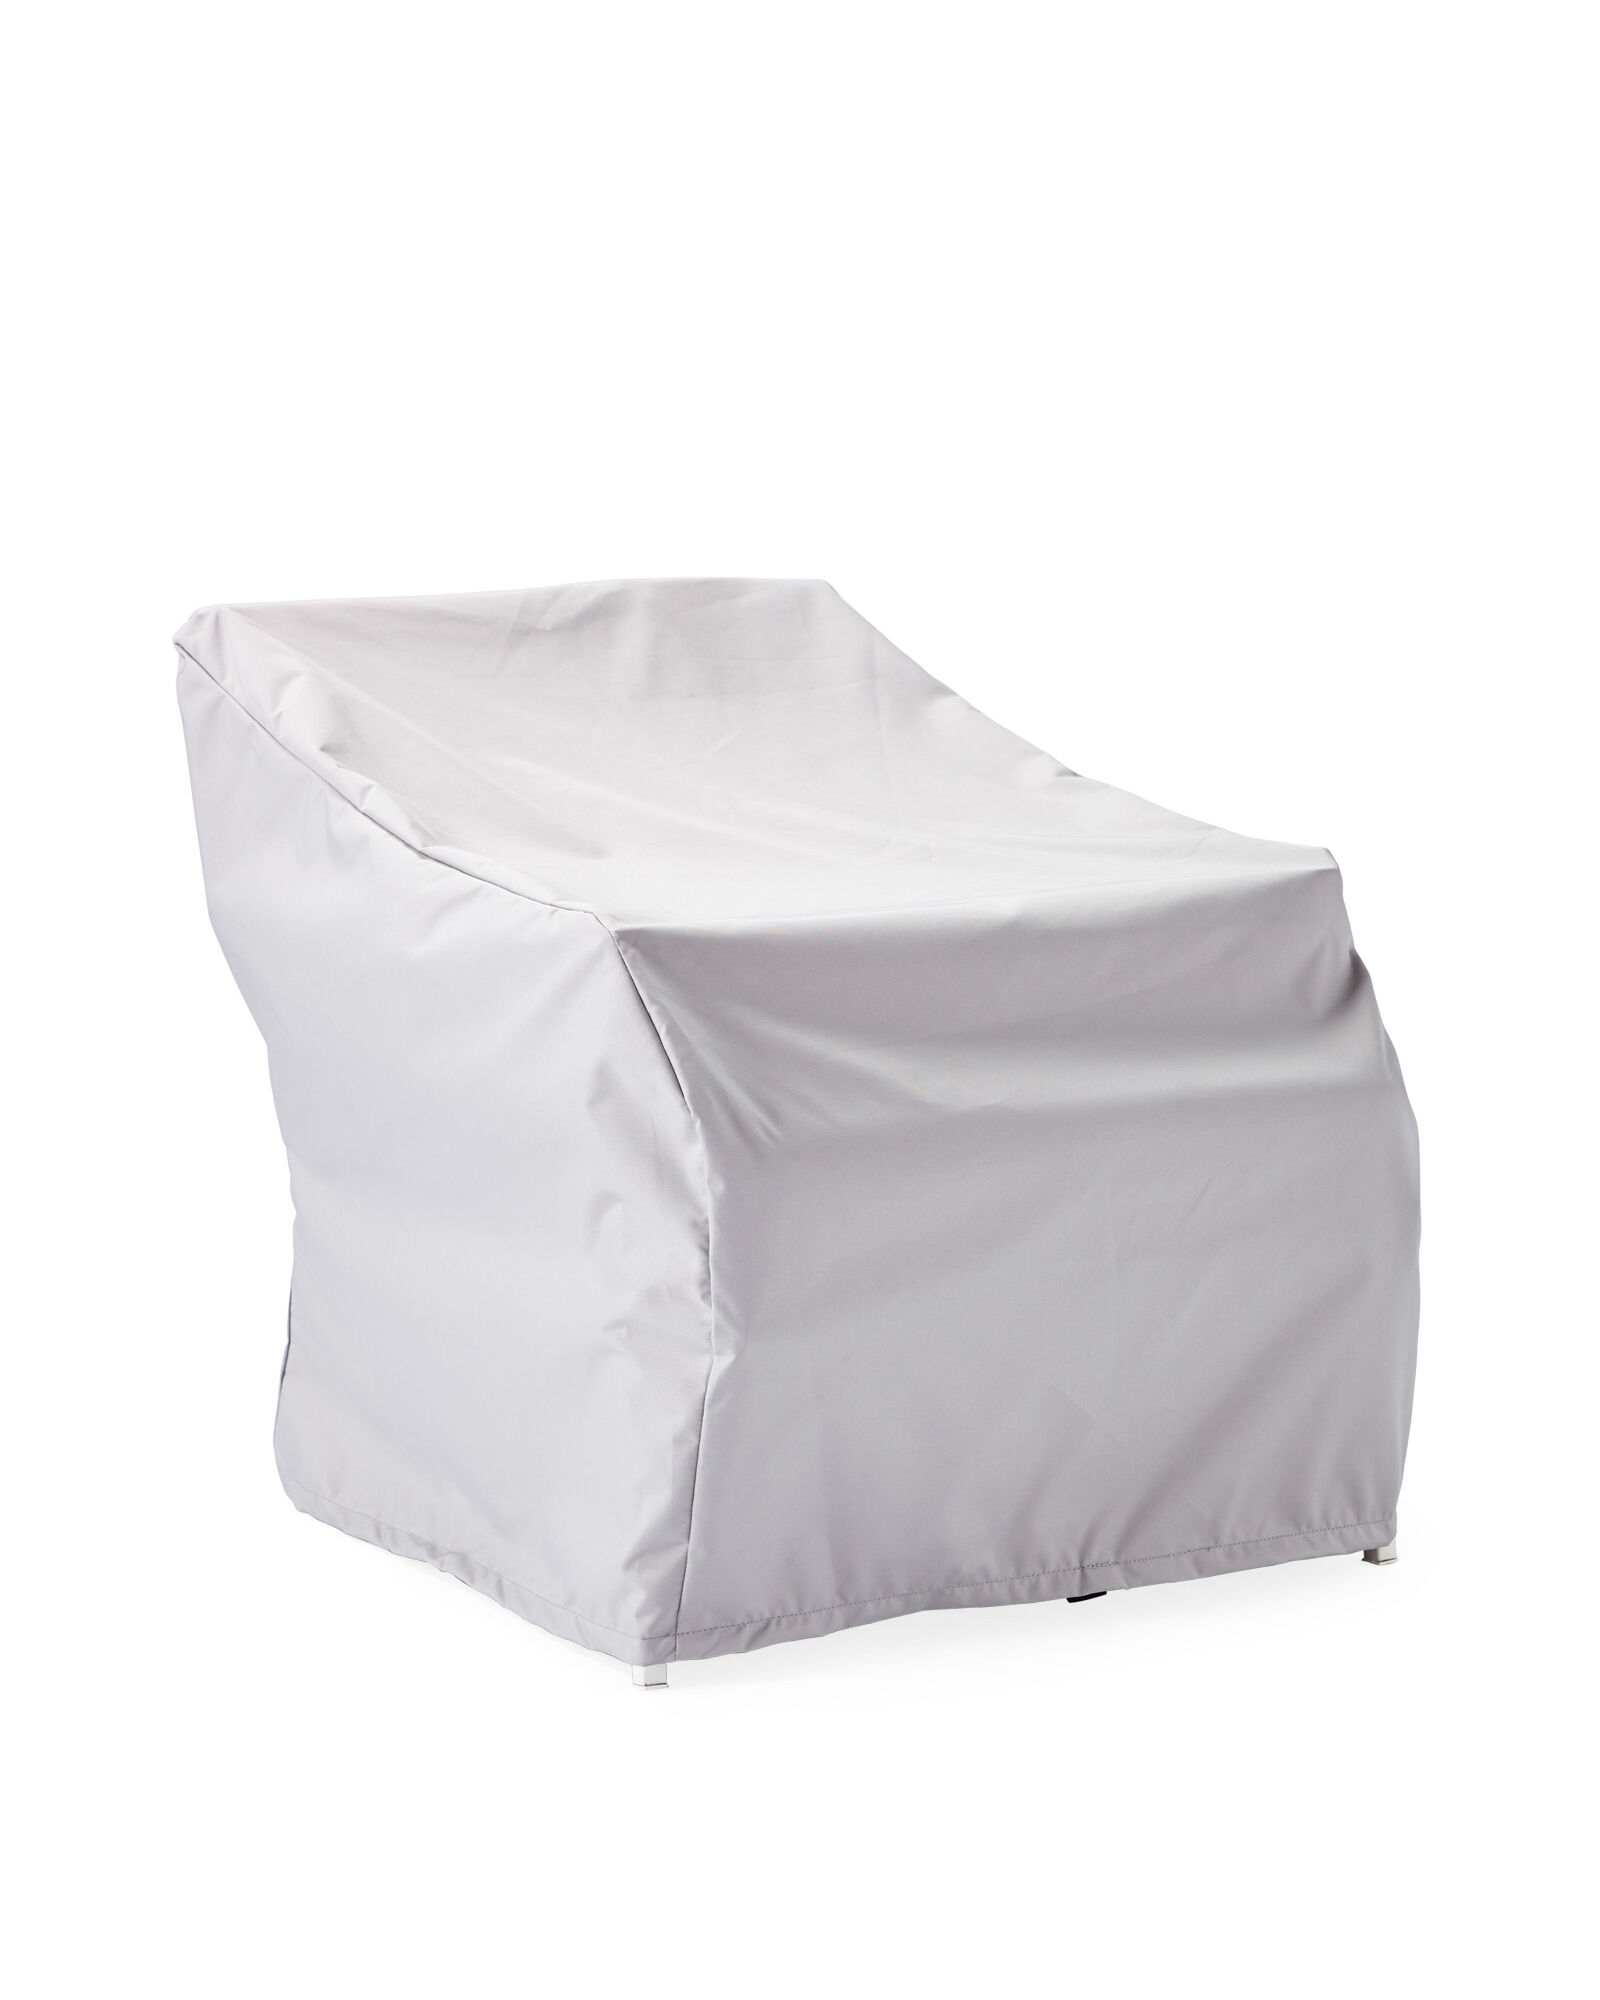 Protective Cover - Waterfront Lounge Chair,